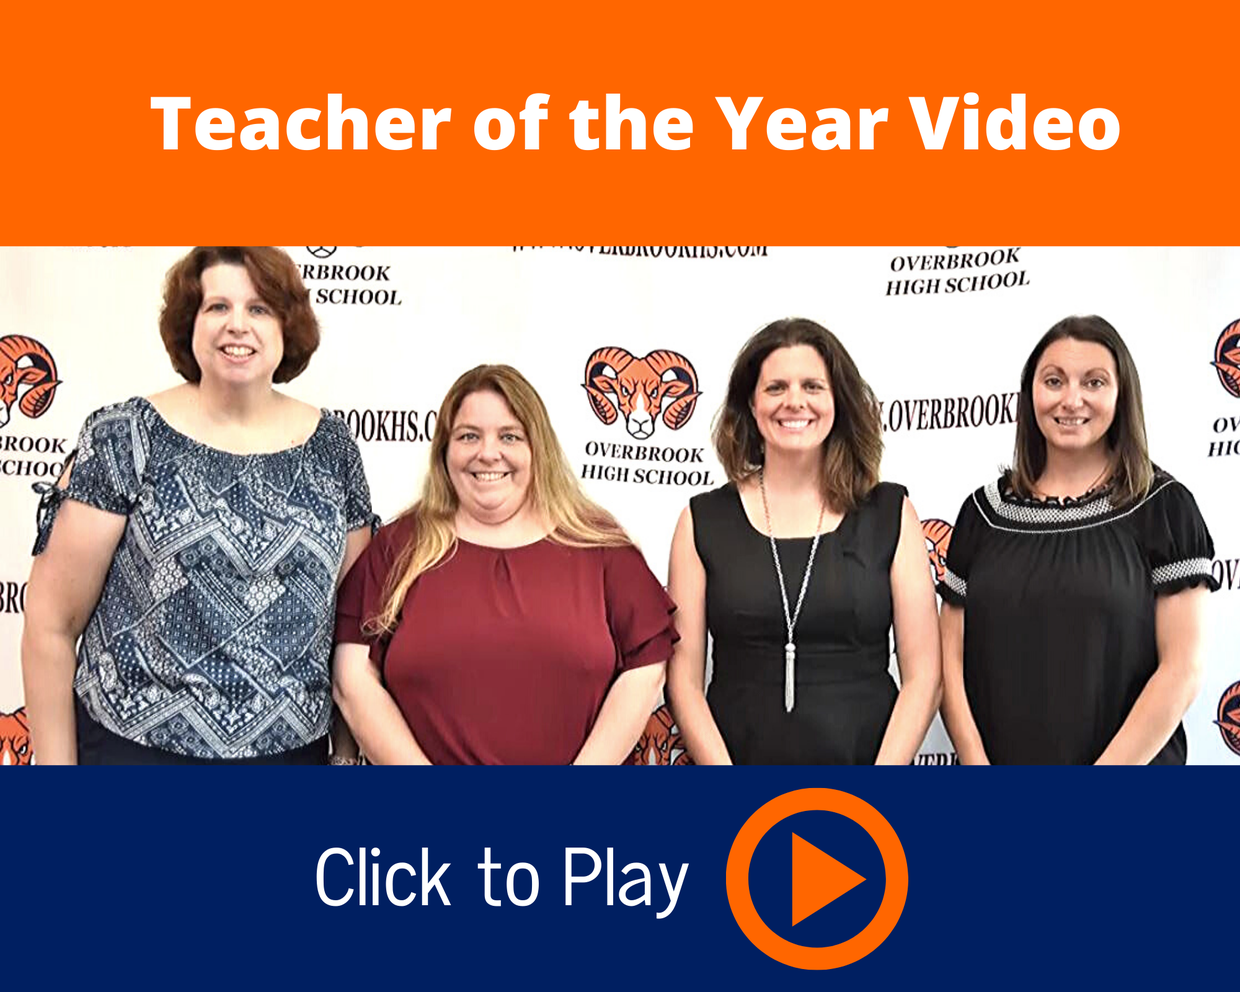 Teacher of the Year Video Image